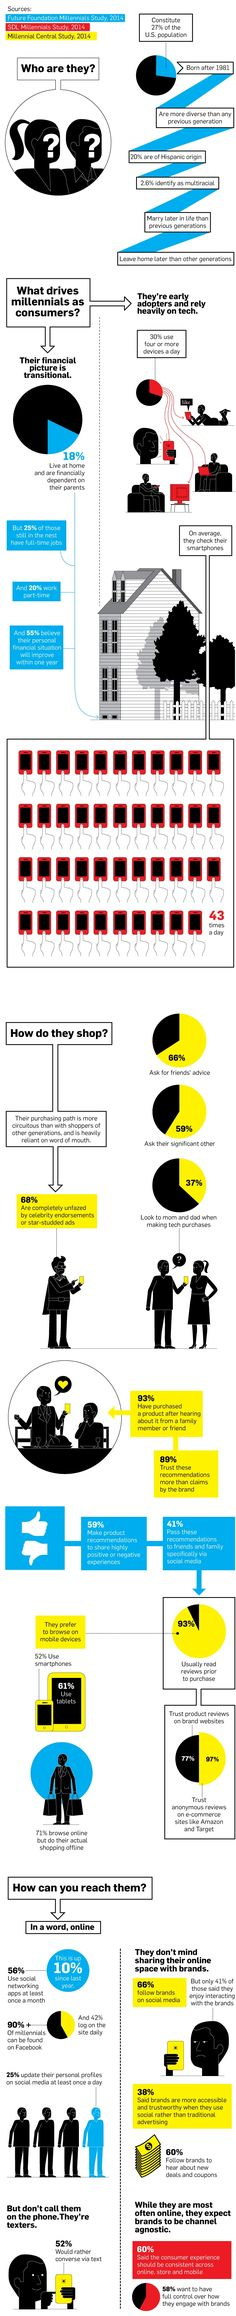 Infographic: Everything You Need to Know About the Millennial Consumer | Adweek